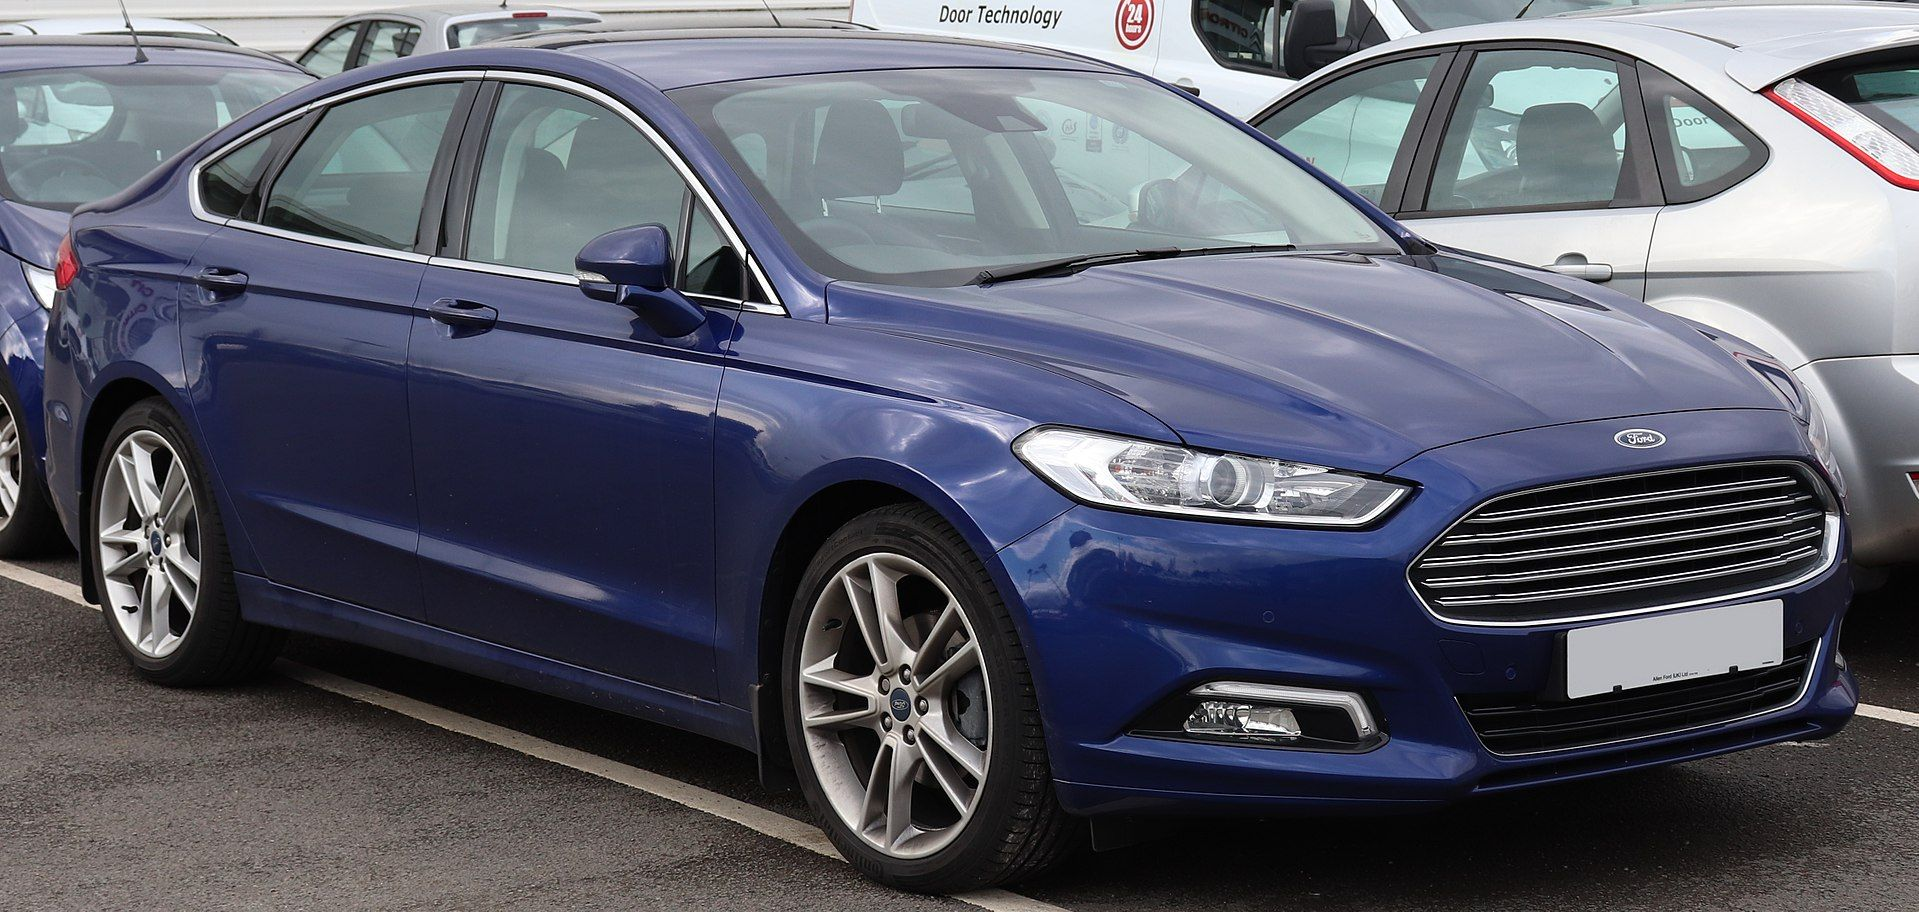 2018 Ford Mondeo Titanium Tdci Automatic 2 0 Ford Mondeo Wikipedia Ford Mondeo Ford Car